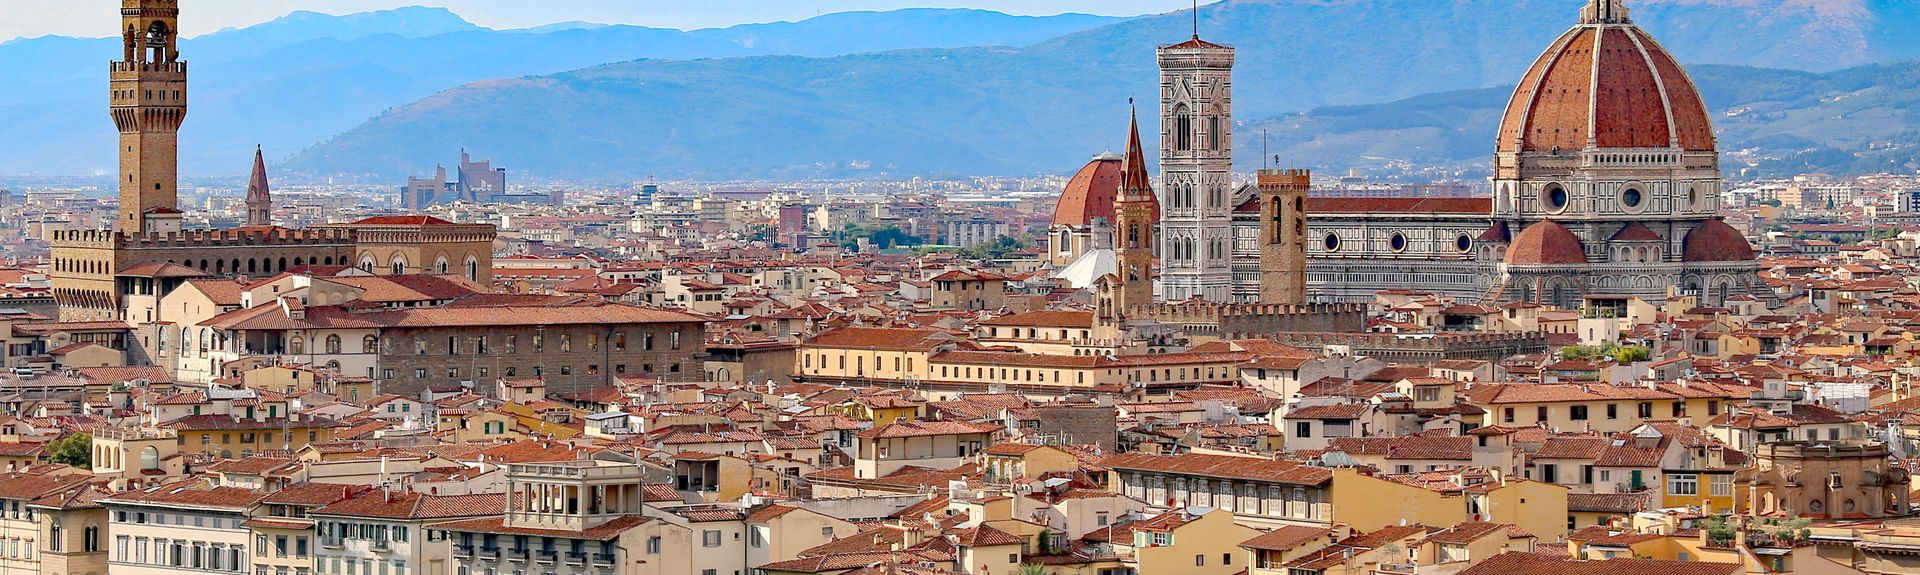 Florence, Metropolitan City of Florence, Tuscany, Italy